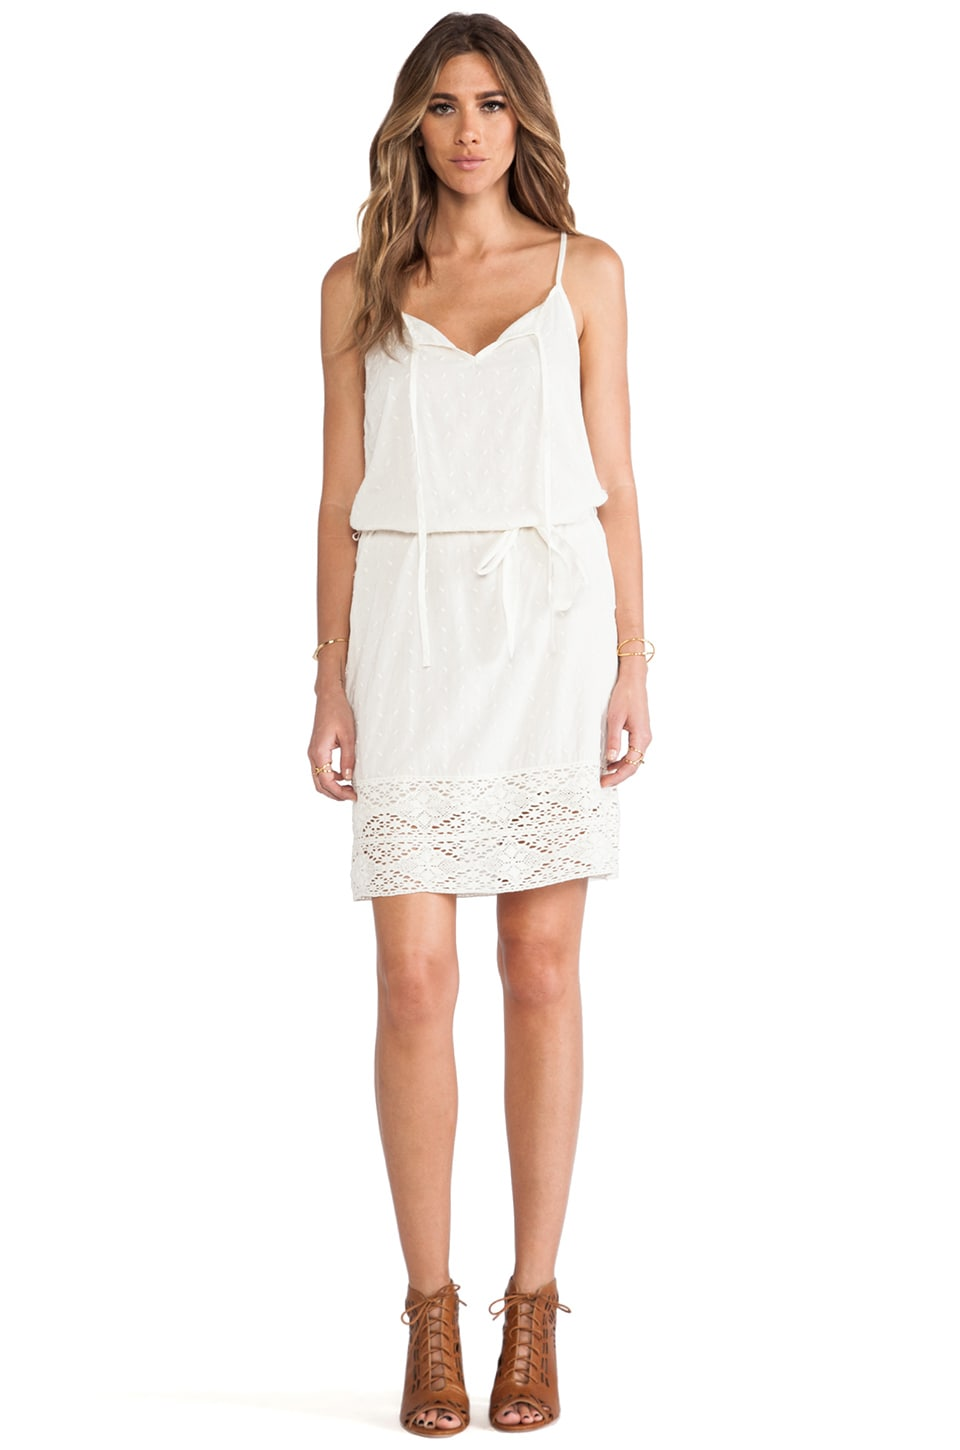 Velvet by Graham & Spencer Jo Sheer Dobby Lace Dress in Cream